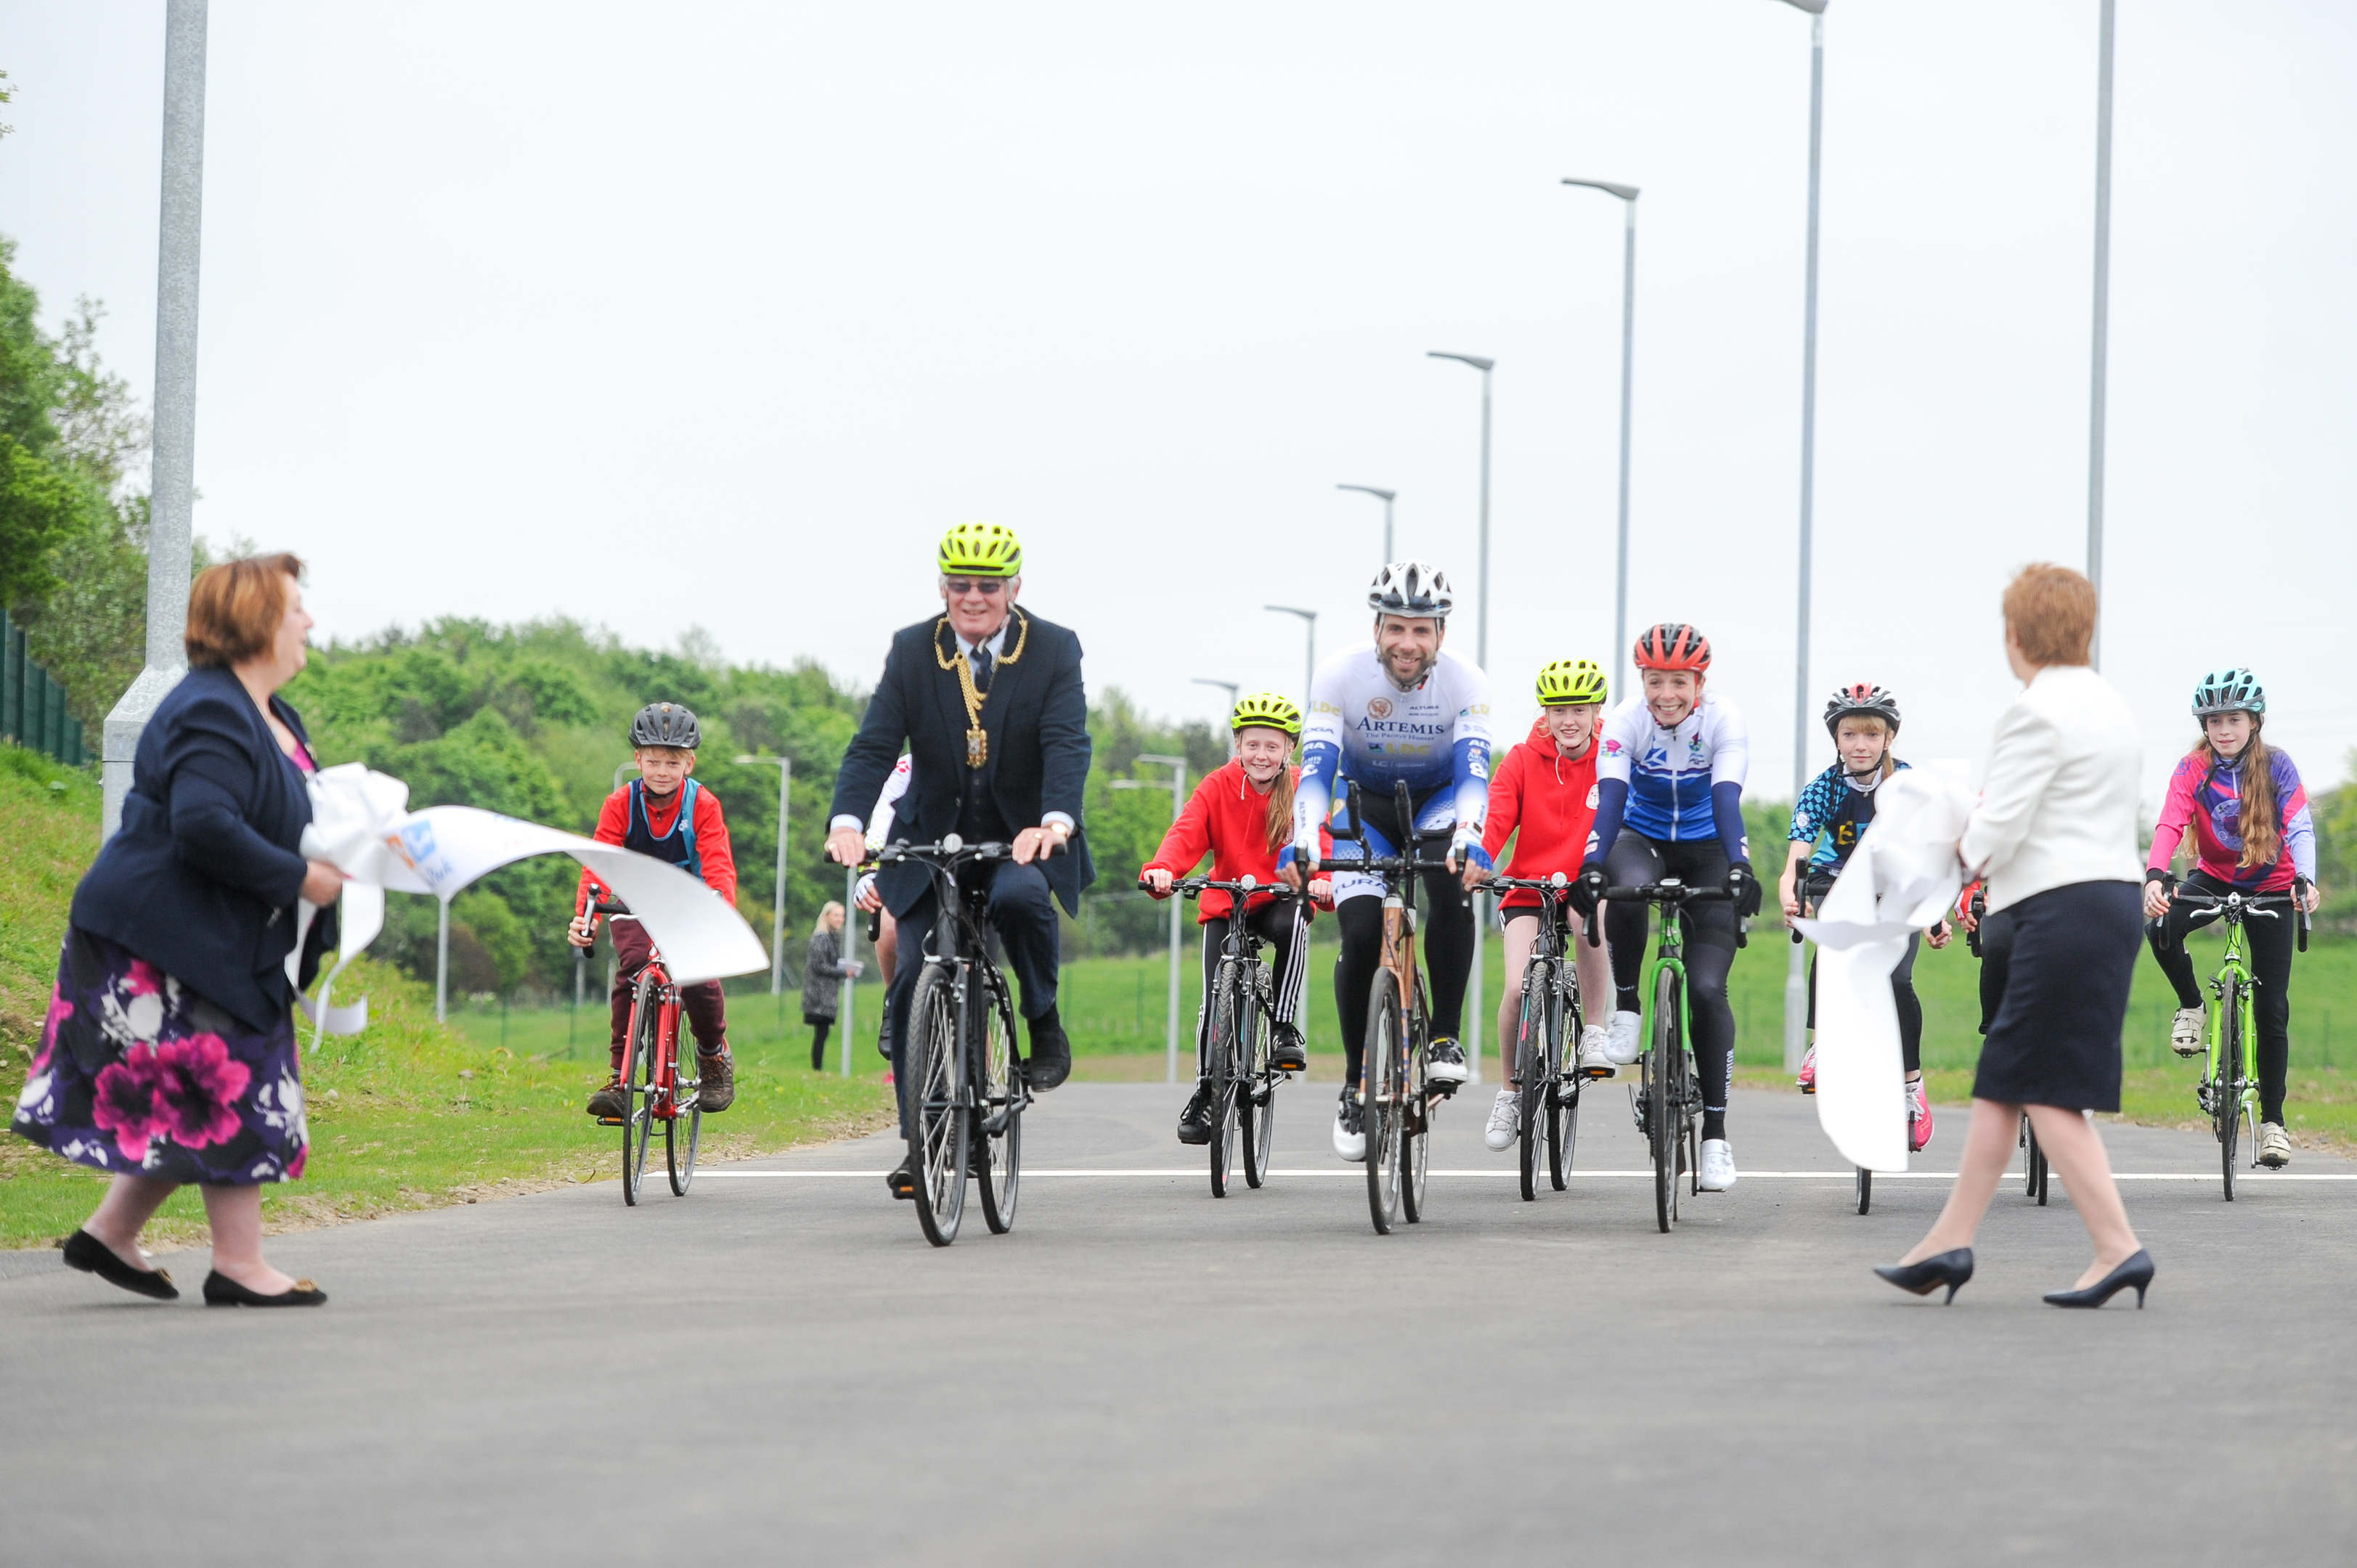 Some of the cyclists led by Provost Jim Leishman and Mark Beaumont burst through the ribbon to declare the park officially open.